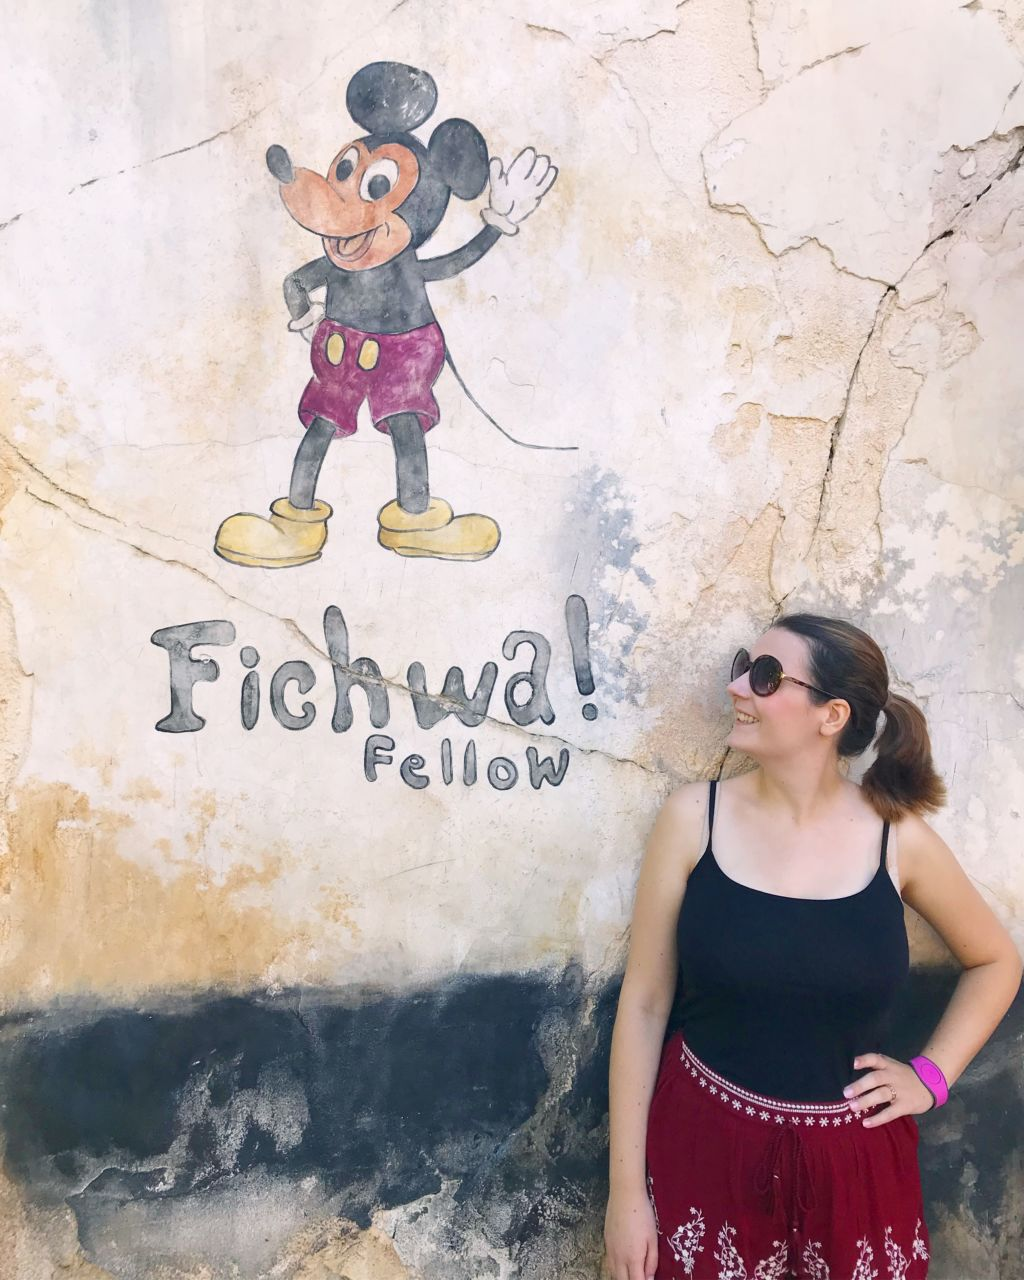 Where to find the Fichwa Fellow Instagram wall at Walt Disney World